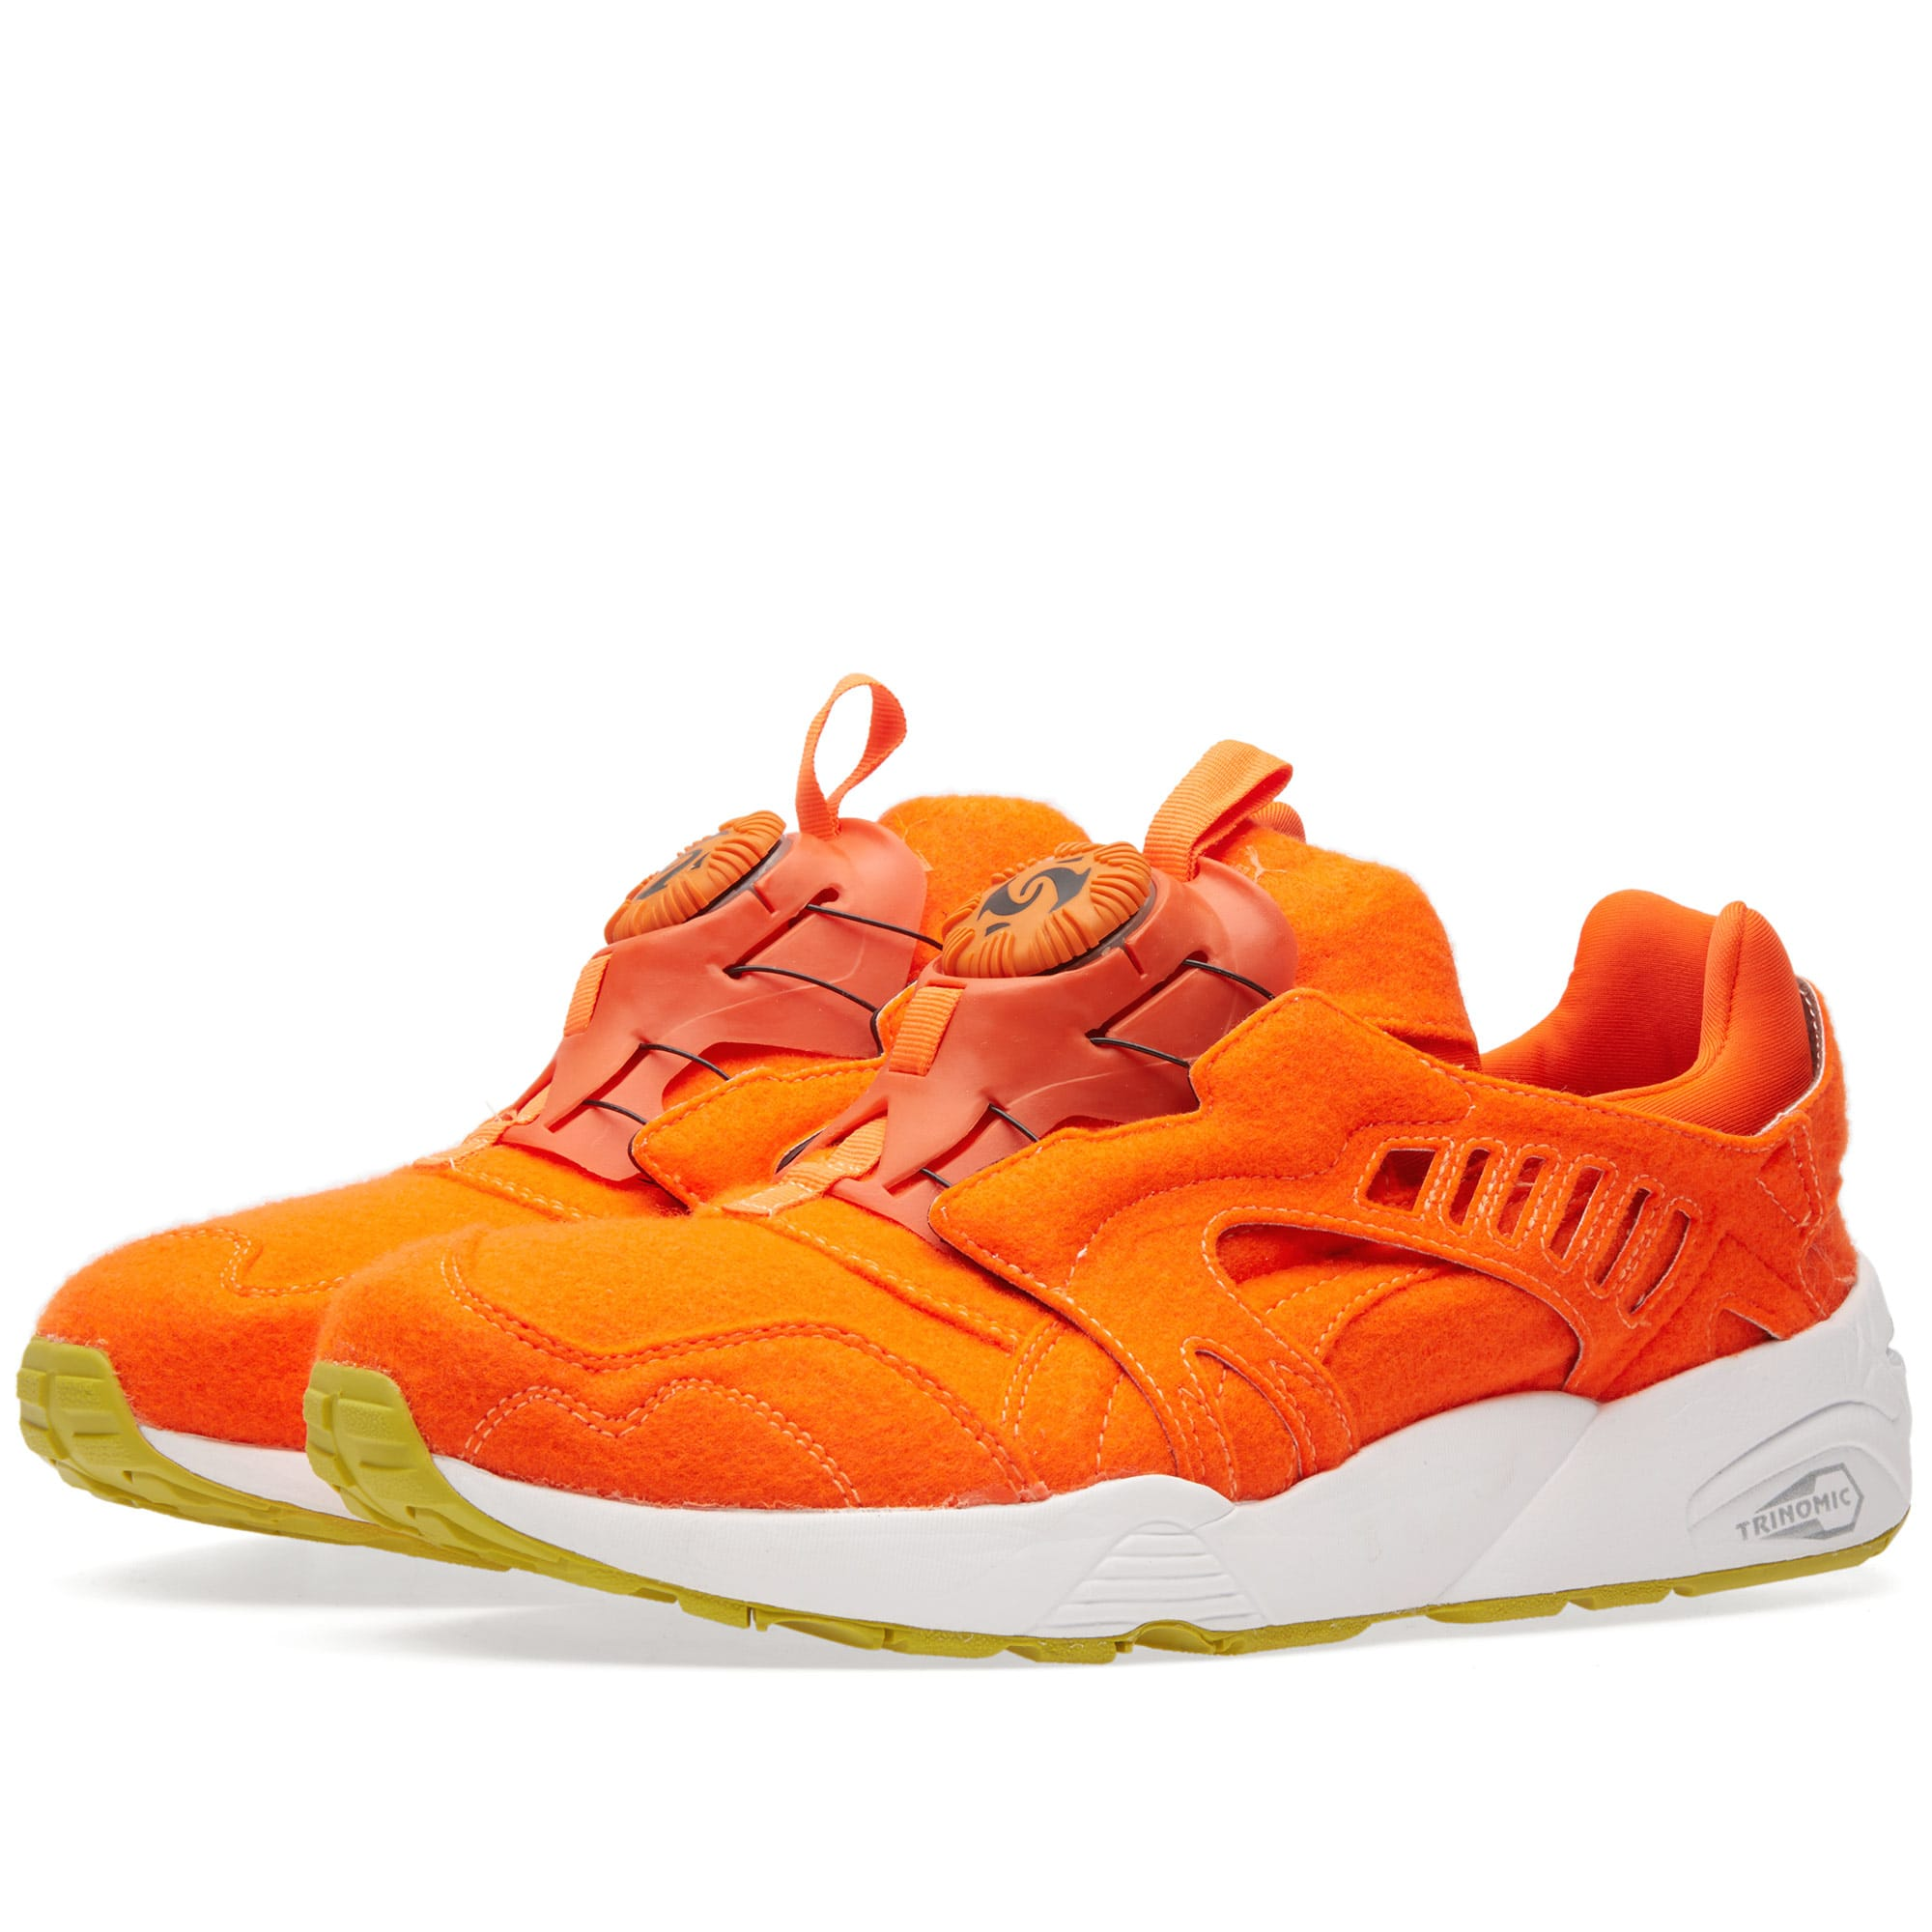 pretty nice c9080 a96ad Puma Disc Blaze Bright Orange   END.